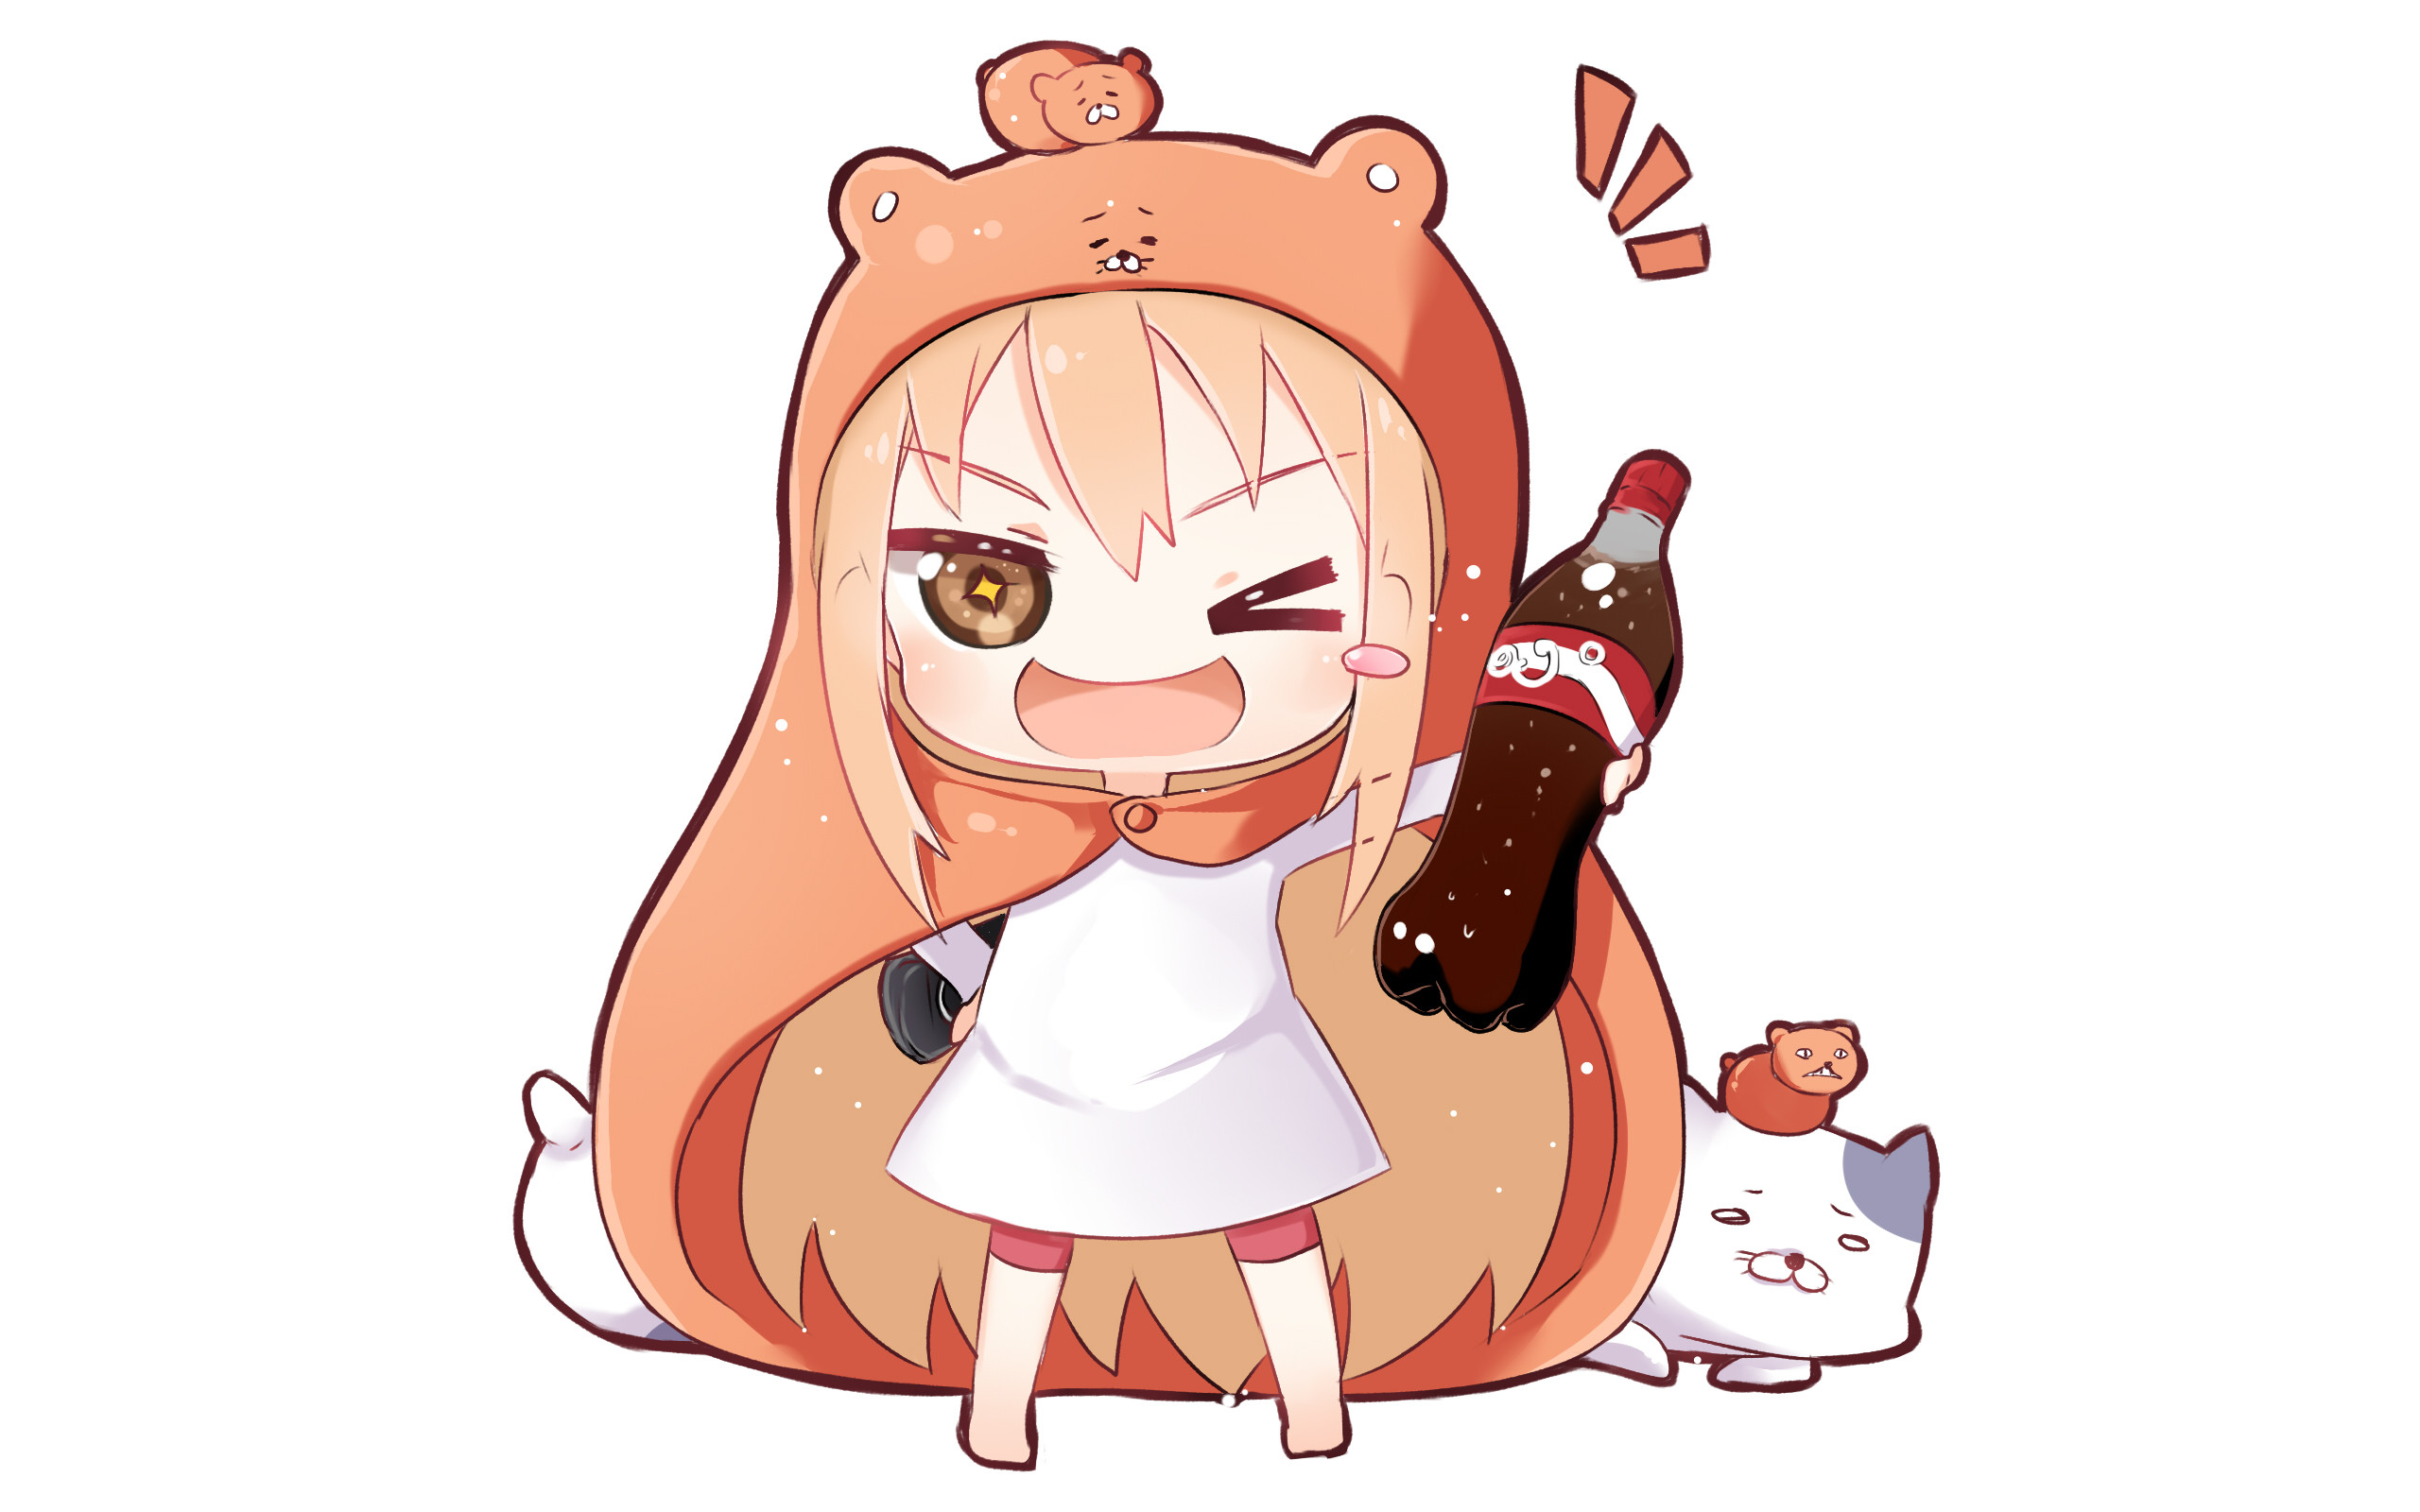 Res: 2560x1600, Umaru-chan Anime Cat Hamster Blonde Wink Chibi Long Hair Brown